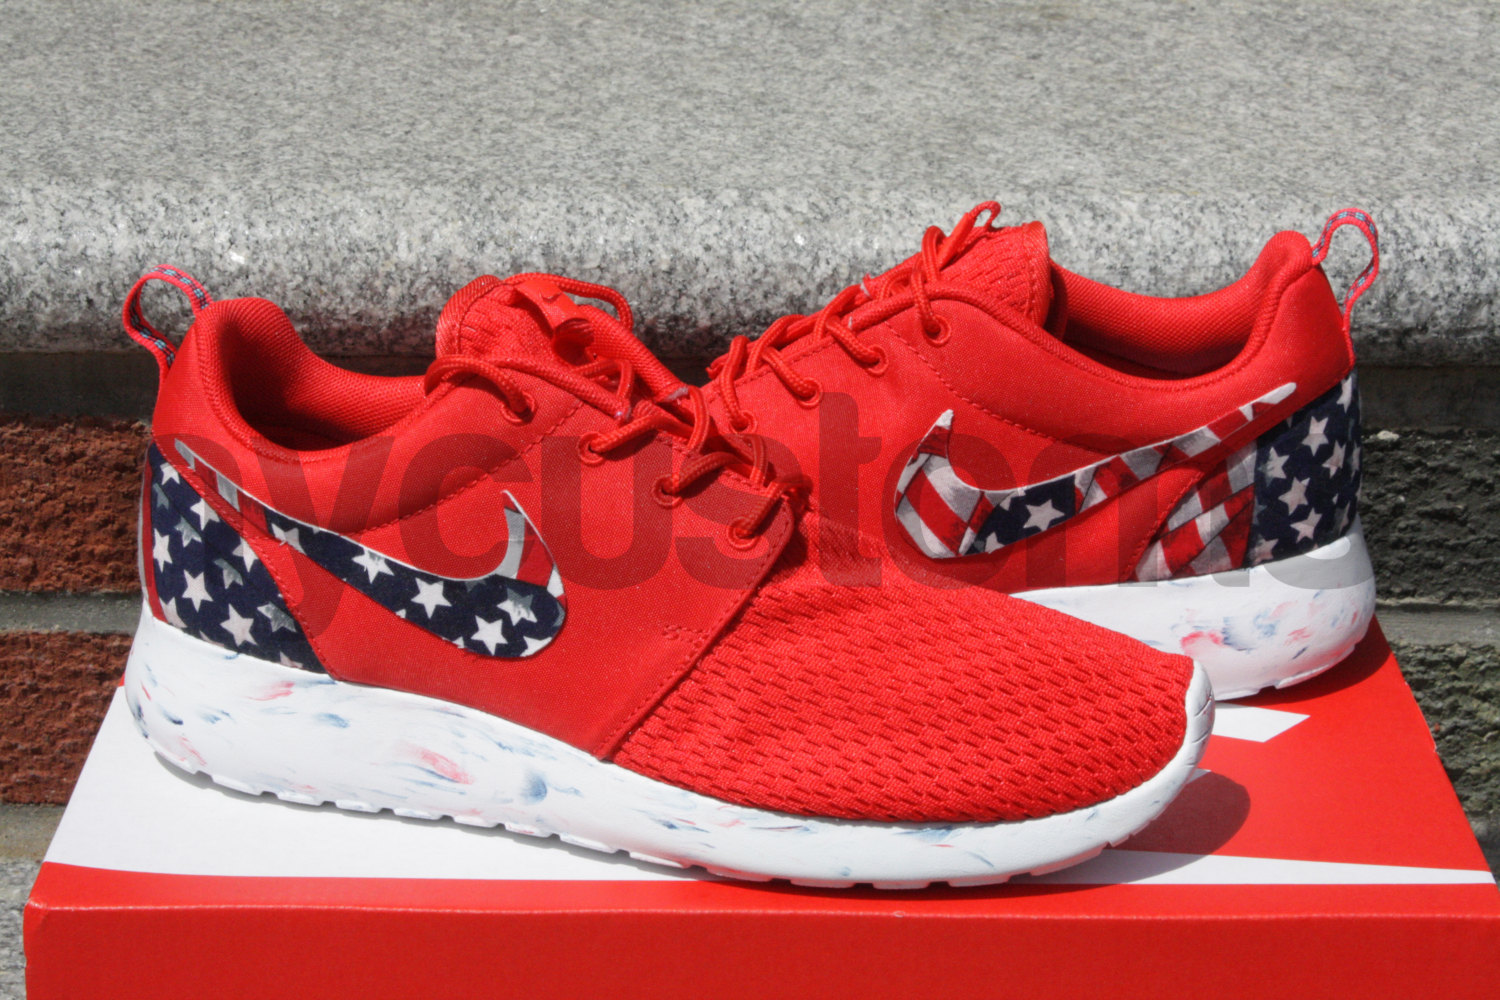 fed3b395afa6 Free Shipping - Nike Roshe Run Red Marble American Flag Pride Print Custom